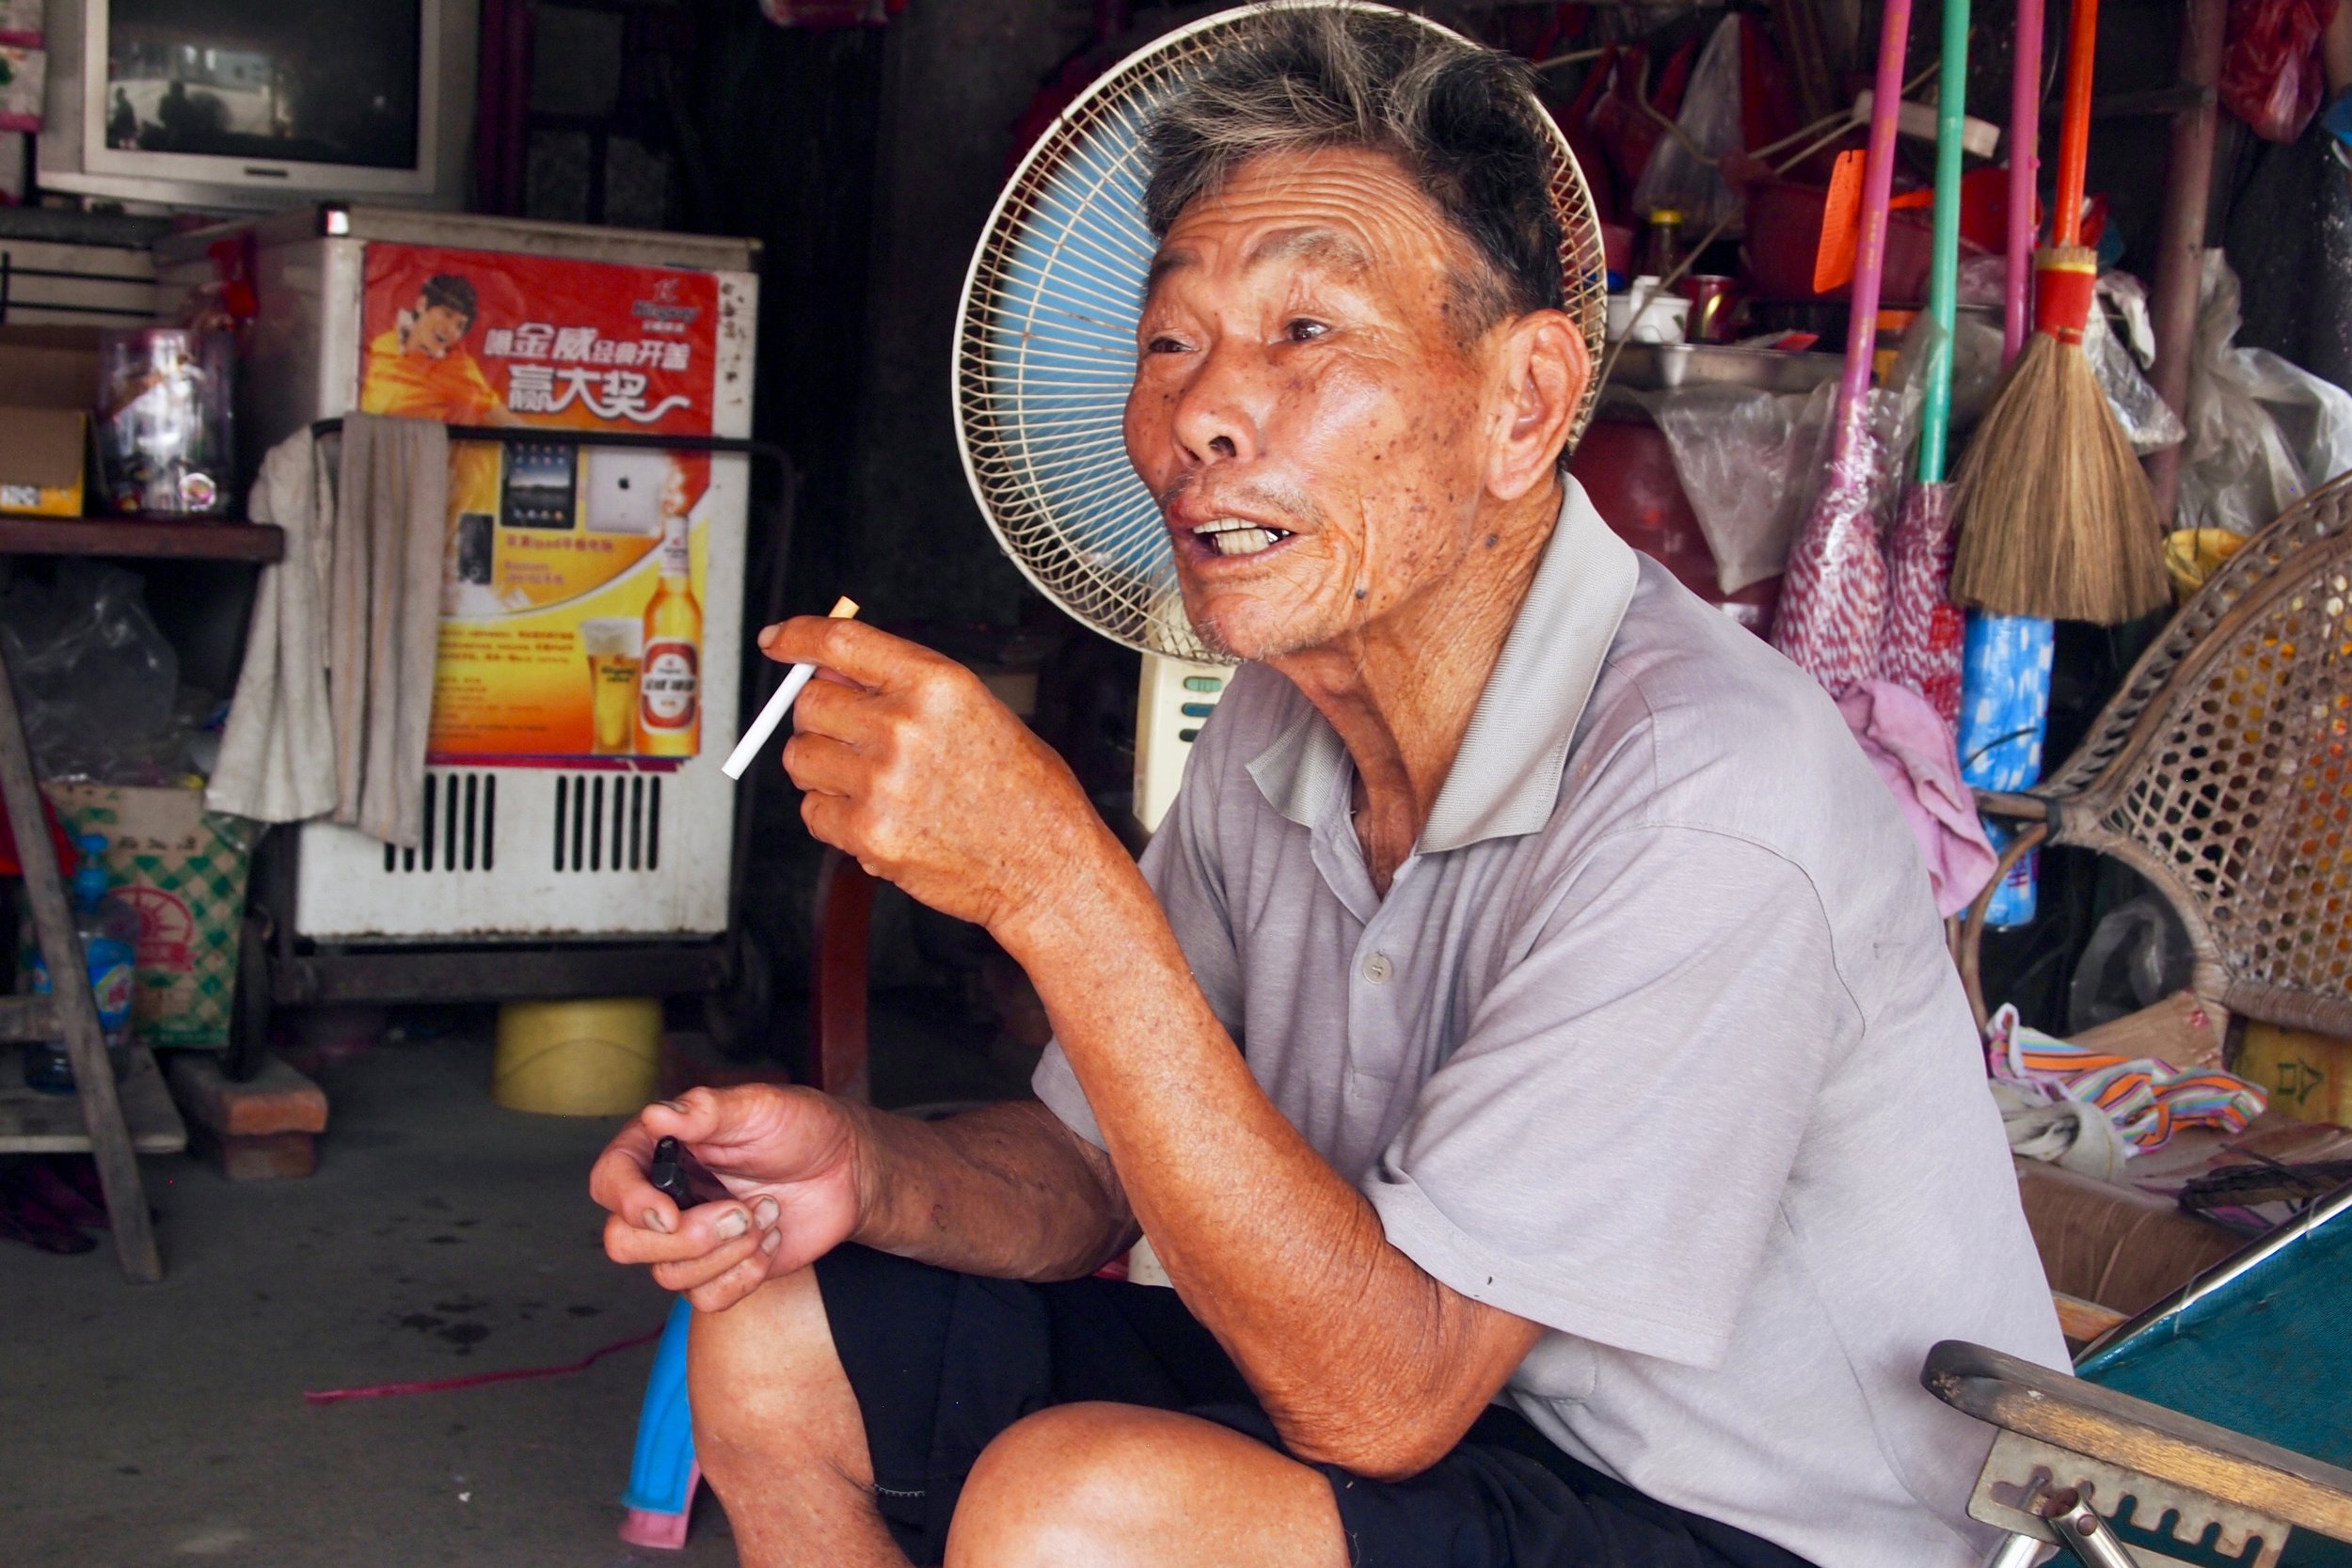 - One in every three smokers in the world lives in China. A tobacco museum sings the praises of the cigarette.